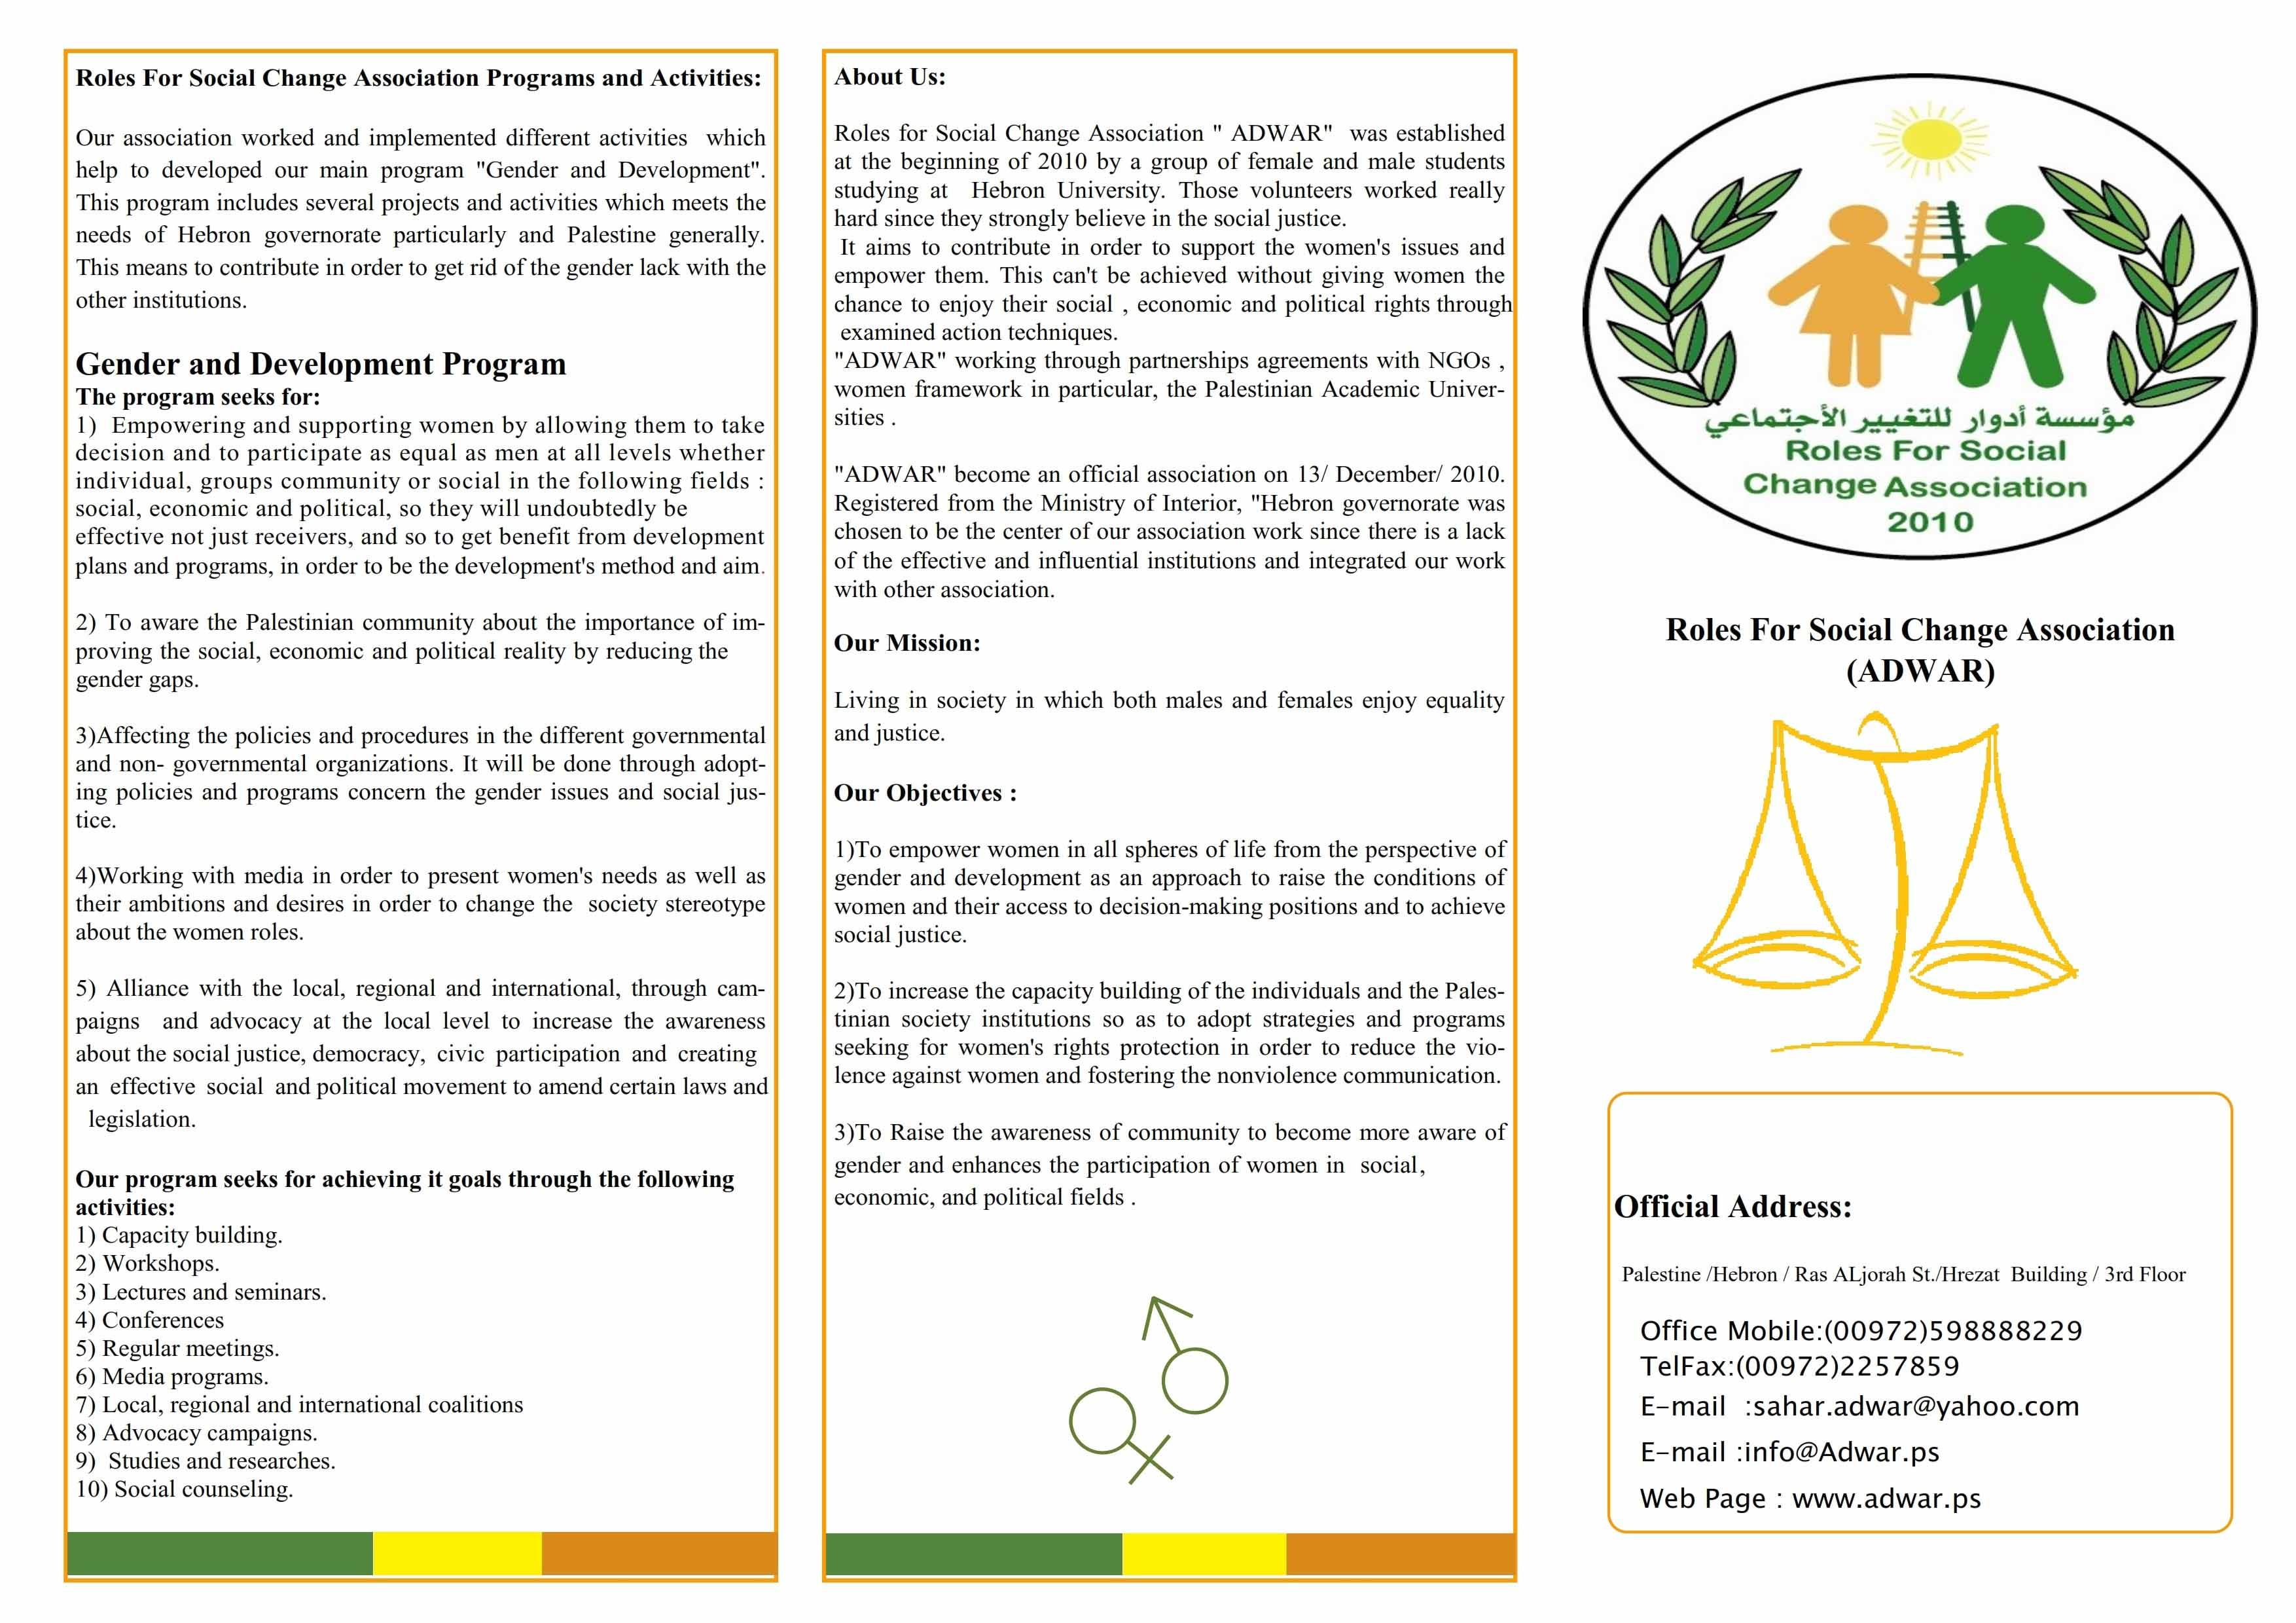 adwar pamphlet 2012 final copy-2